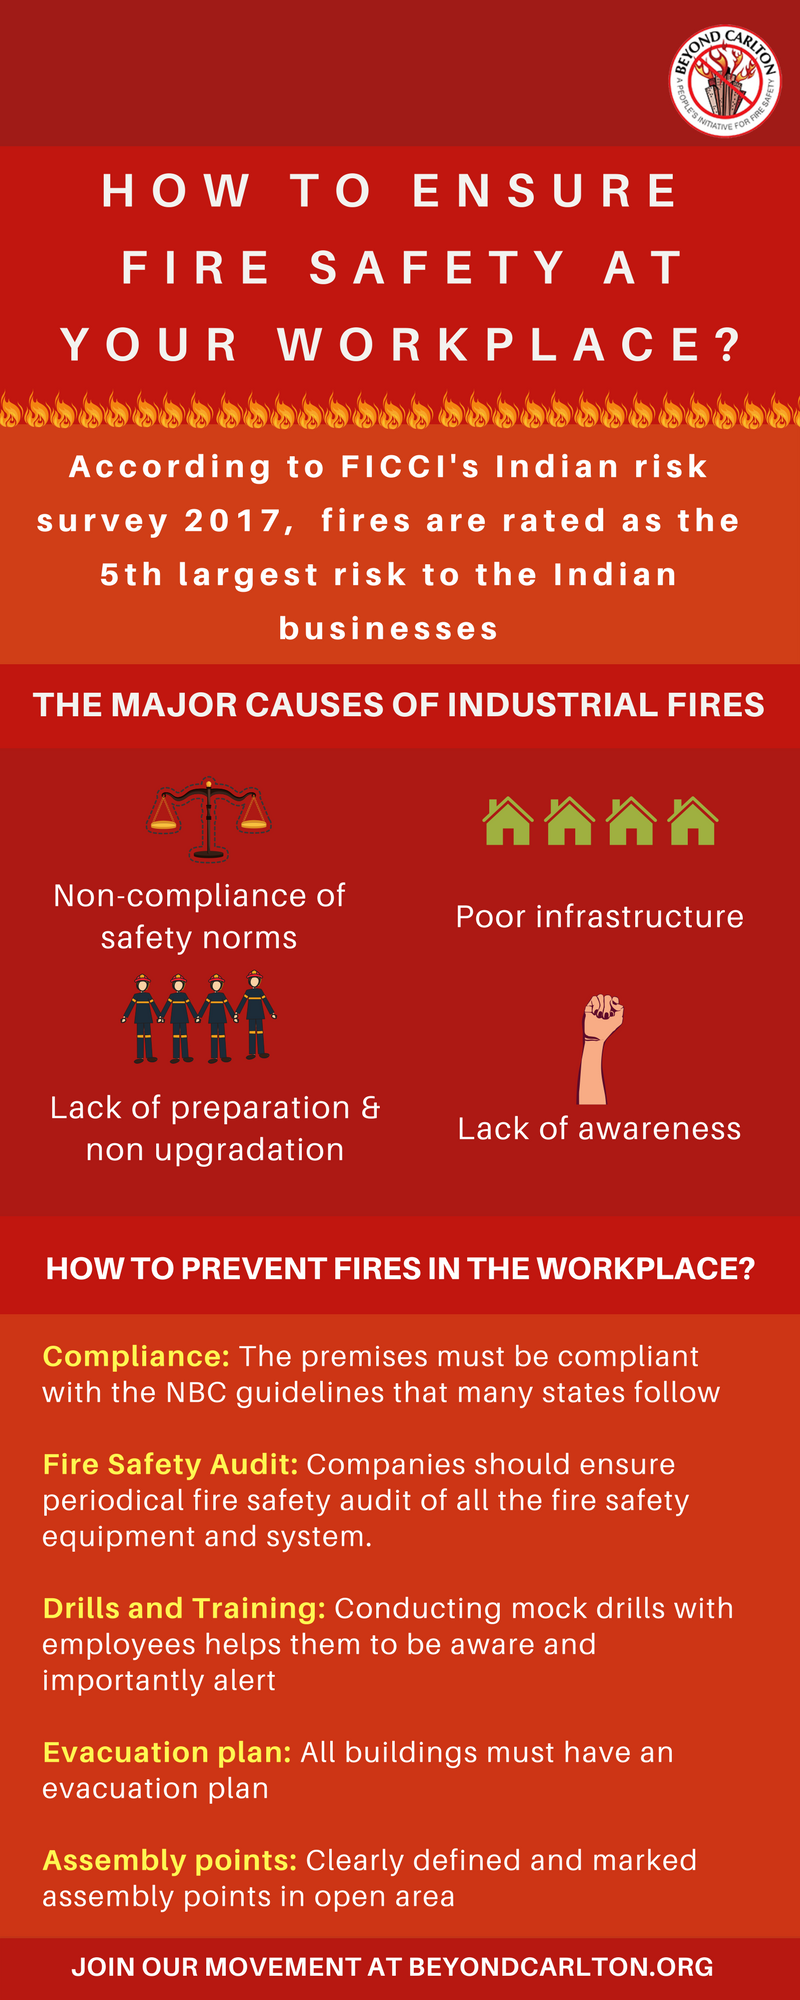 Download fire safety posters & Fire safety checklists